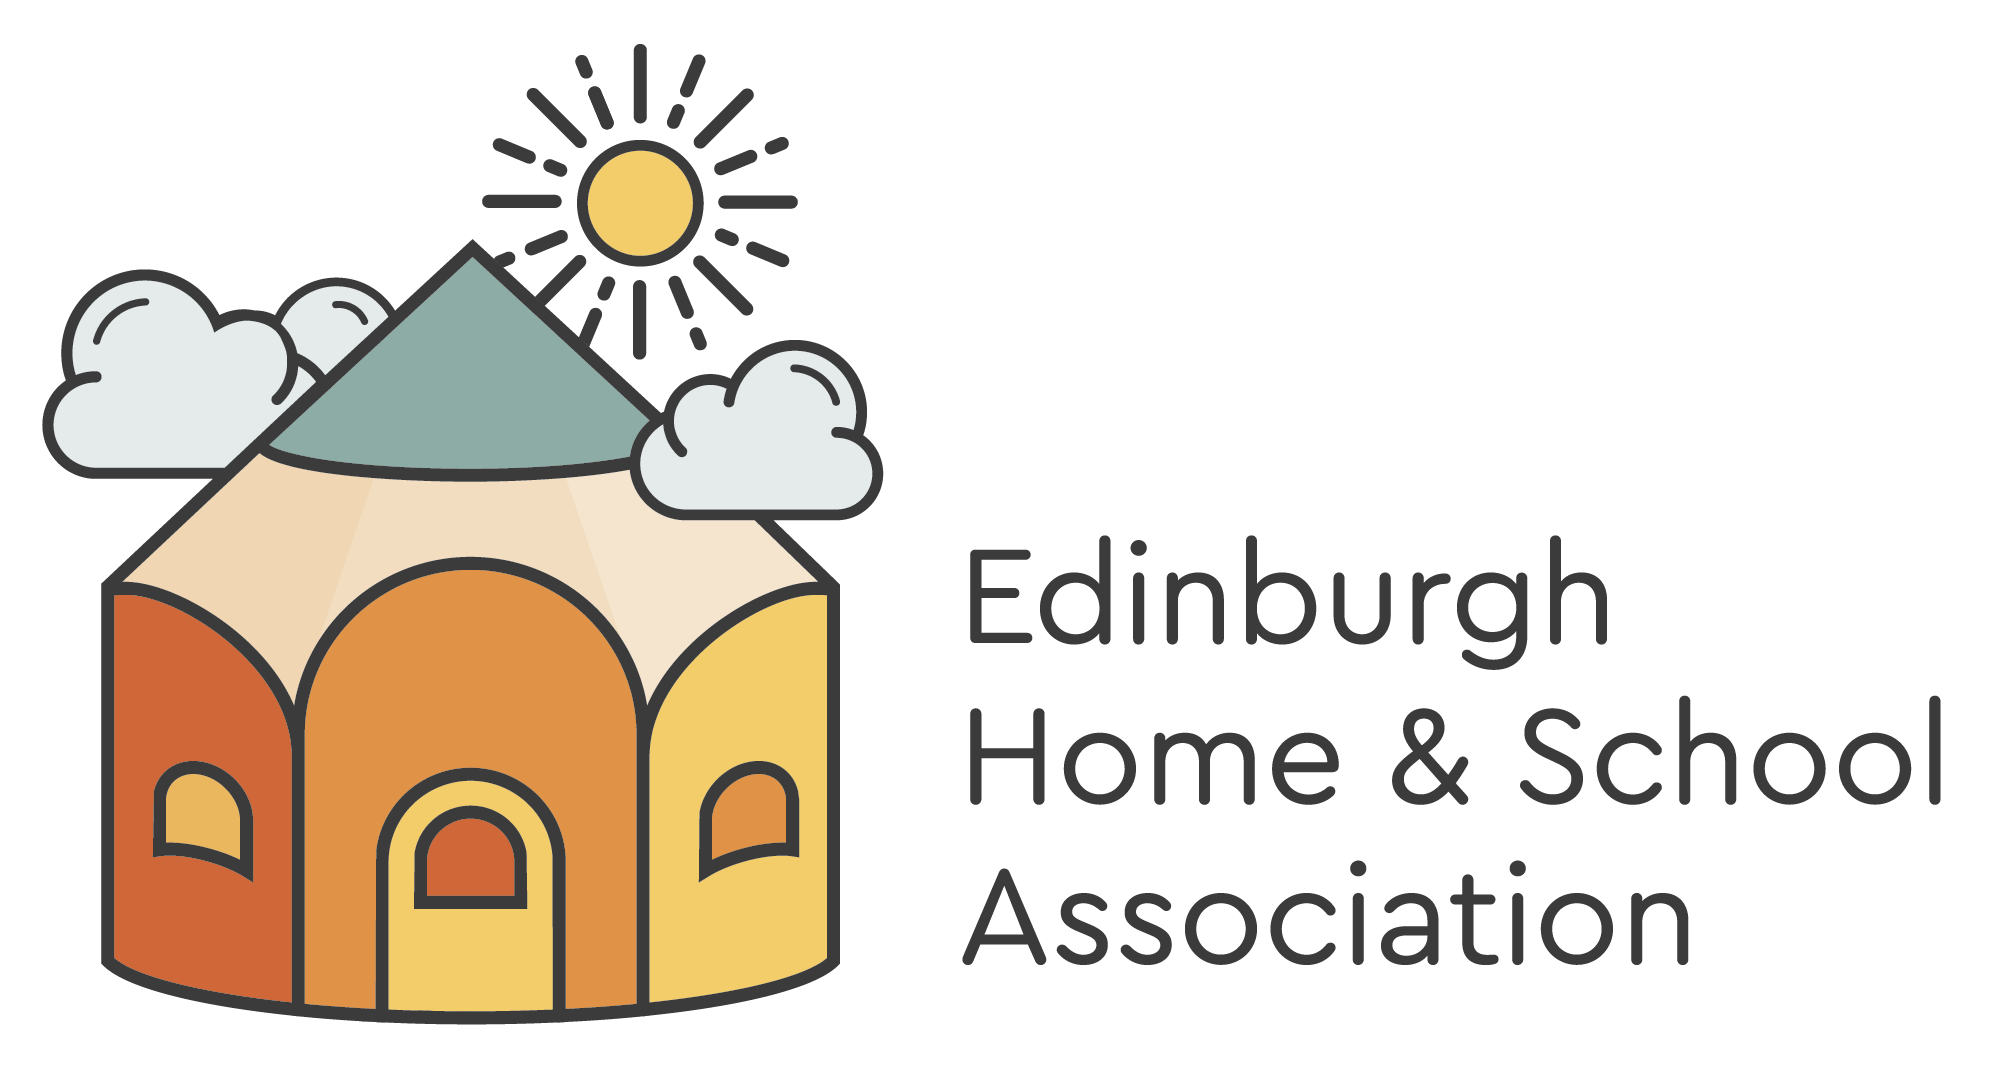 Edinburgh Home and School Association